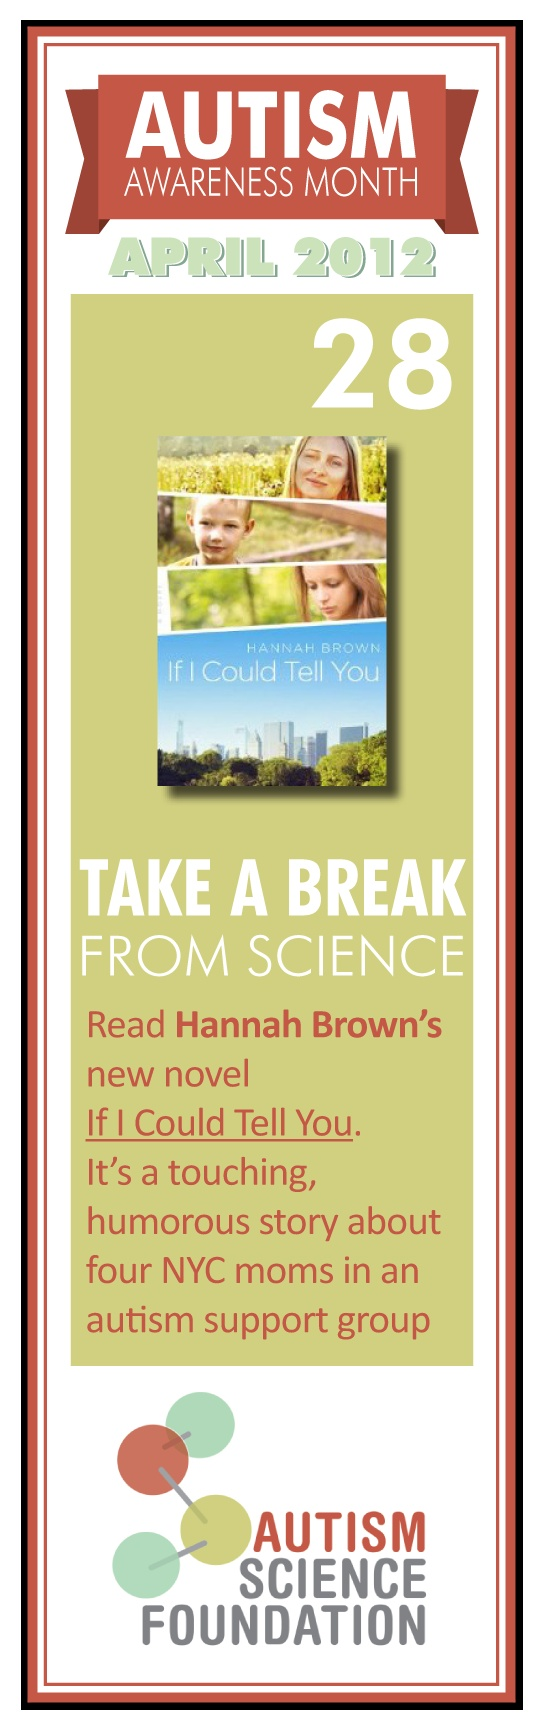 """Take a Break from Science!    Read Hannah Stone's new novel """"If I Could Tell You.""""  It's a touching,  humorous story about four NYC moms in a autism support group.    #autism #books #autismawarenessmonth"""